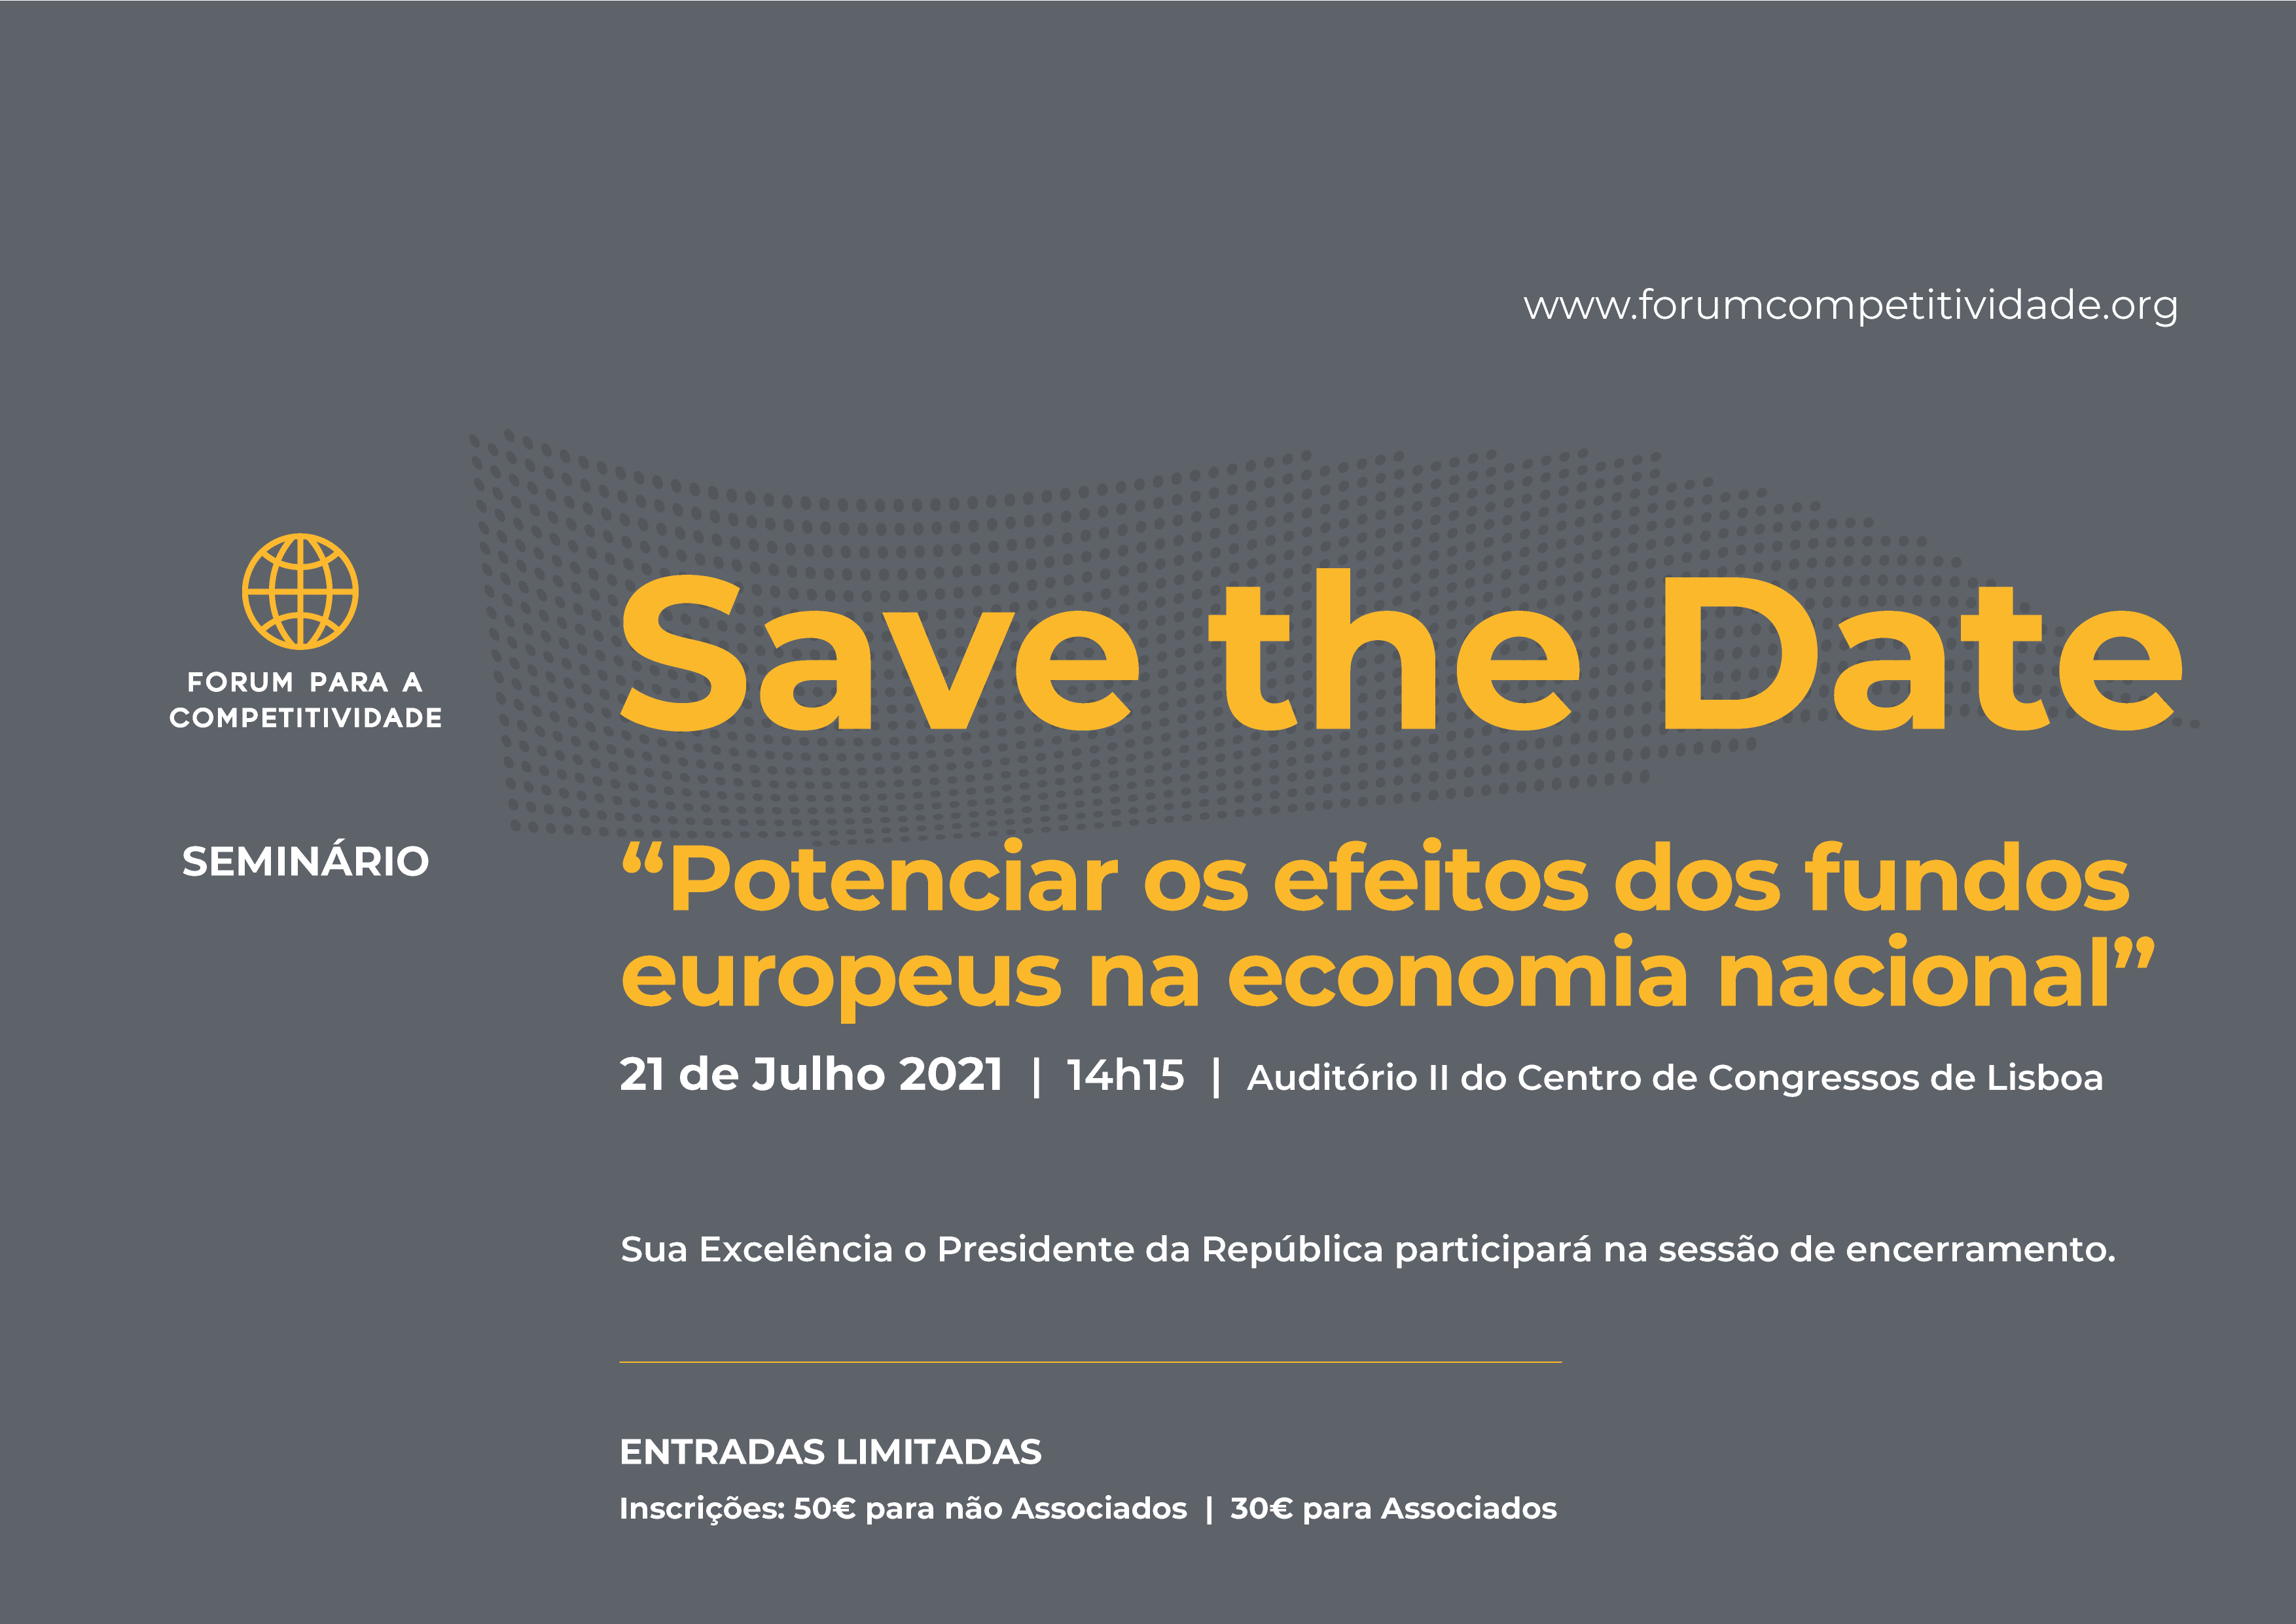 save the date-01 (002)